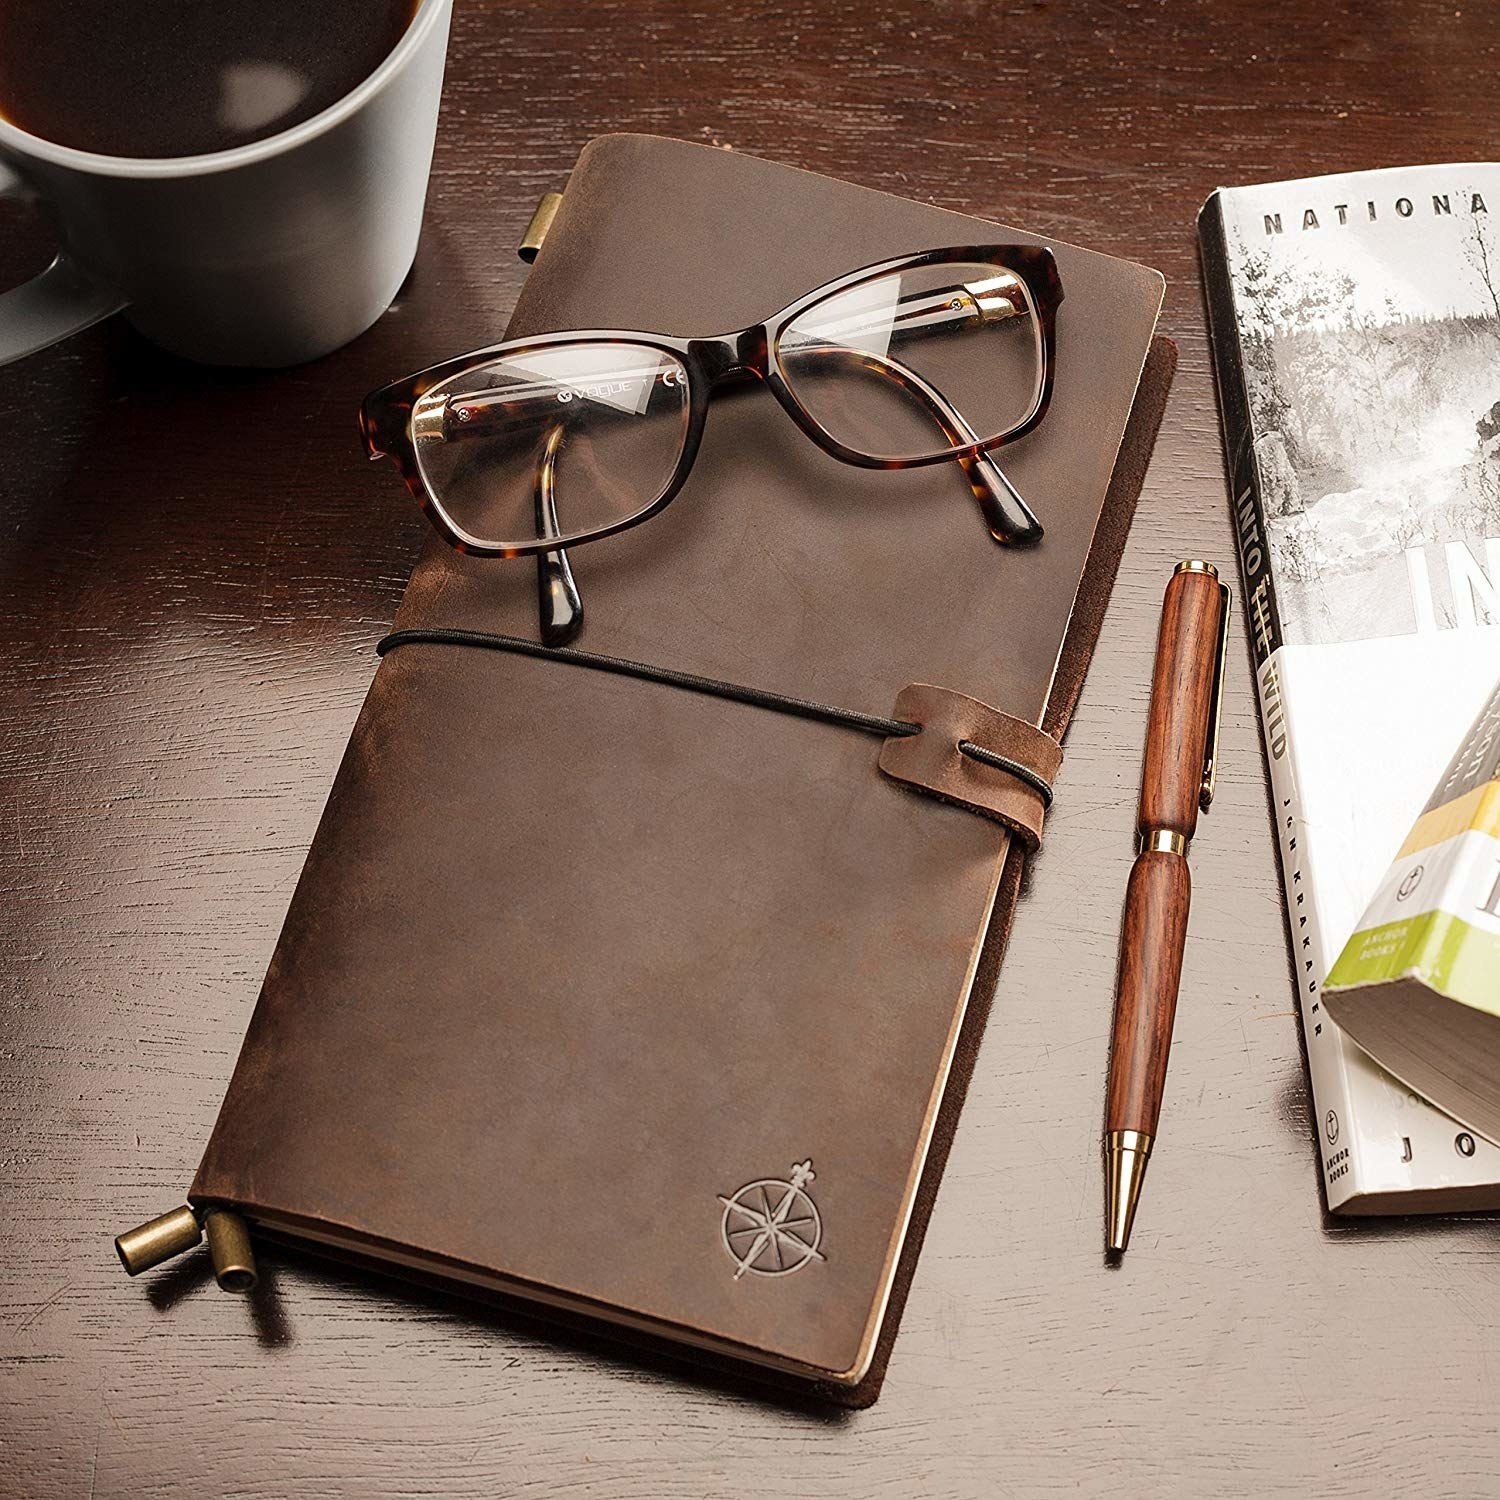 The leather notebook on a desk with a pair of glasses and an elegant pen